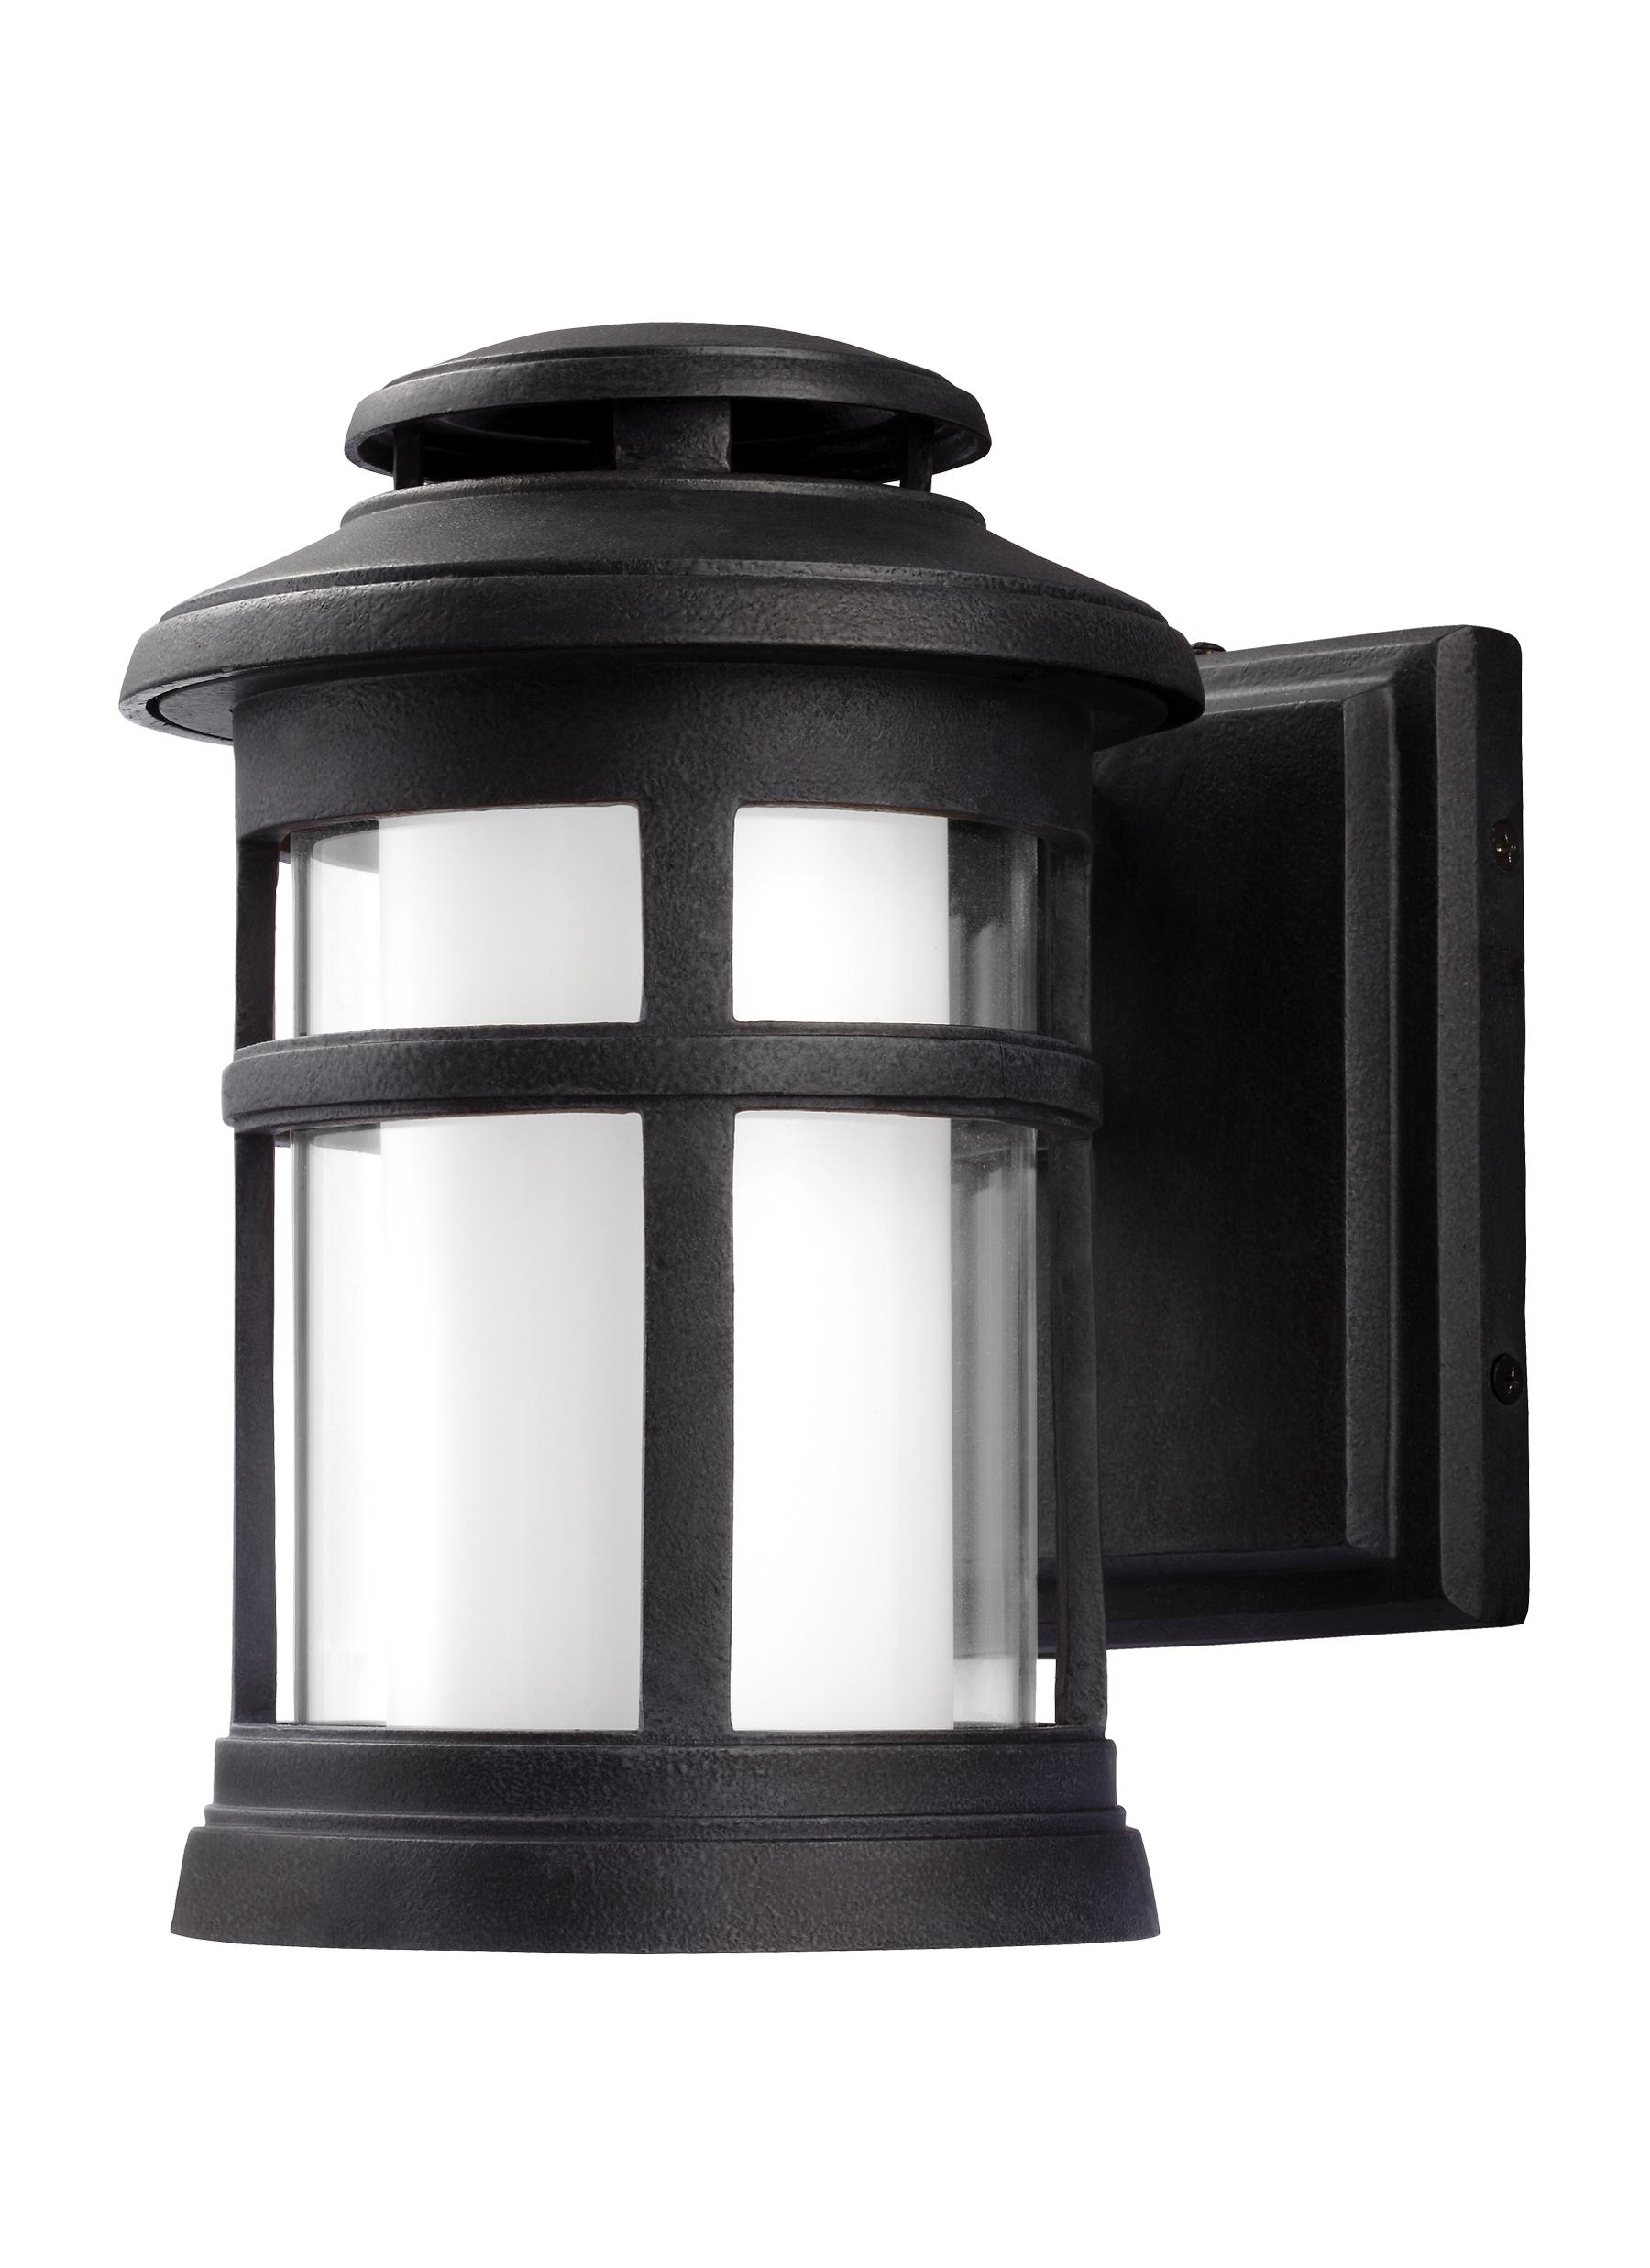 Newest Zinc Outdoor Lanterns For Ol12500dwz Led,1 – Light Outdoor Wall Lantern,dark Weathered Zinc (View 6 of 20)